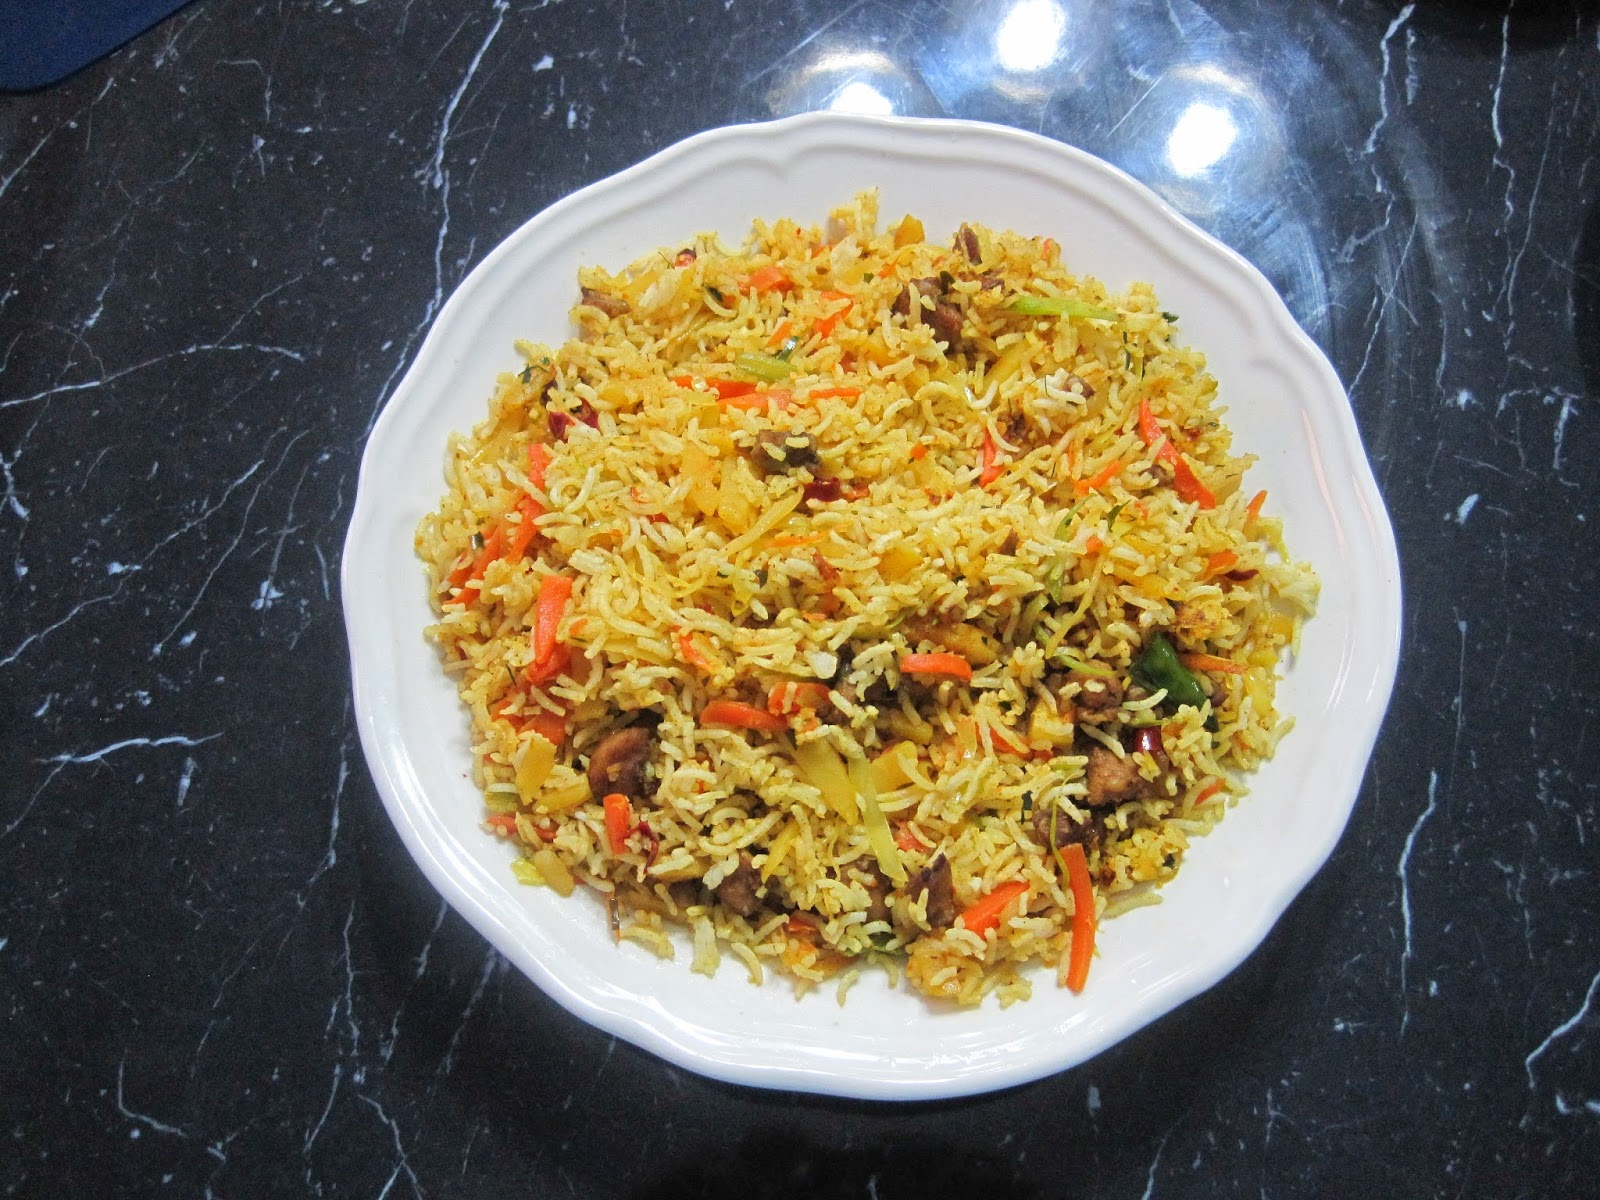 Ajantha's Food/ Fried Rice